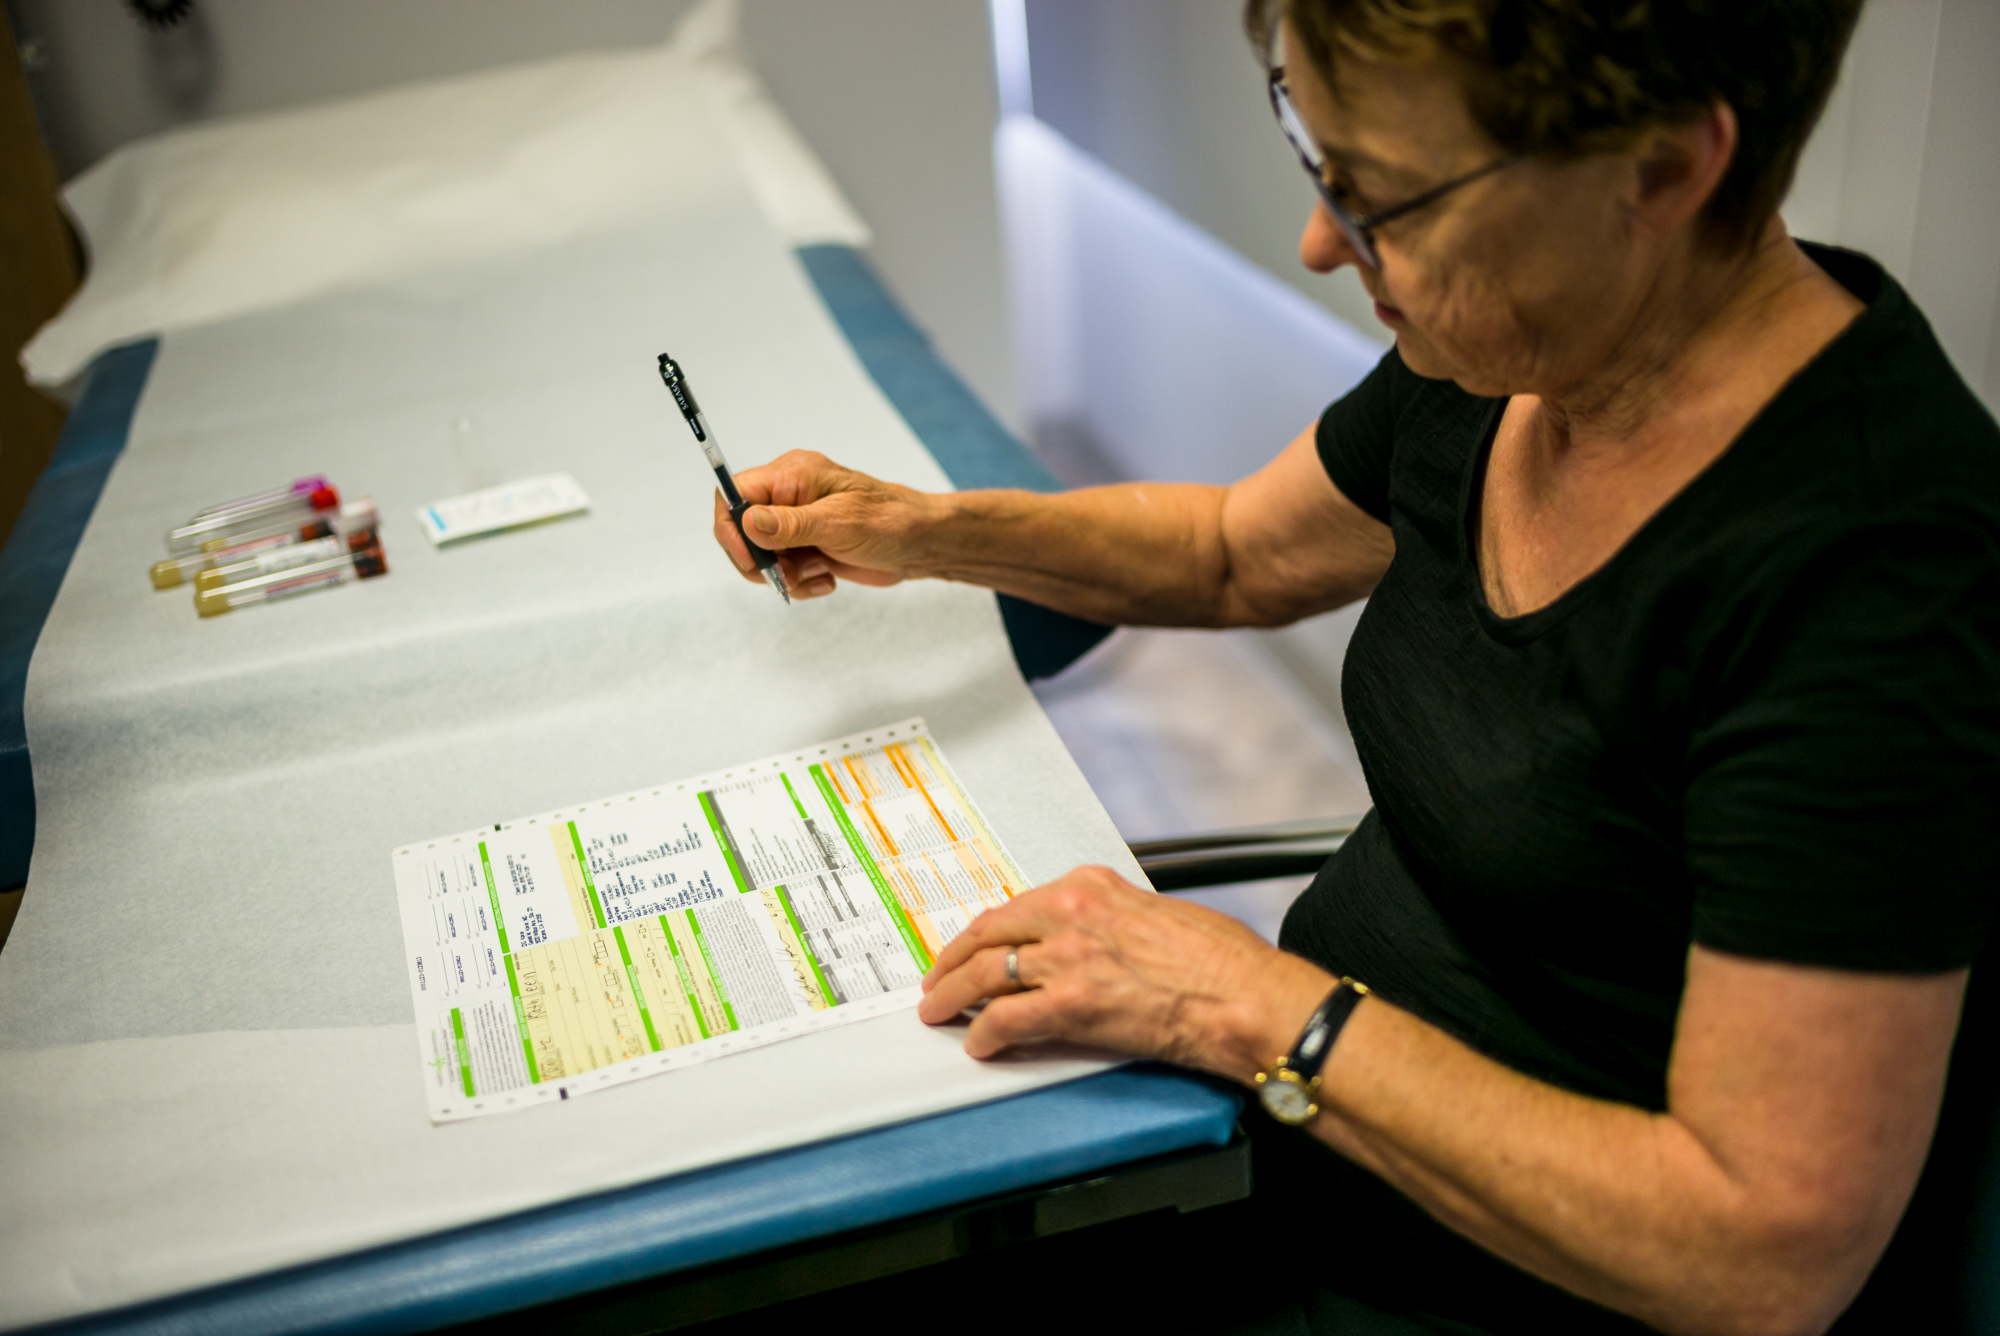 Is there a way to access the Medicare fax number?